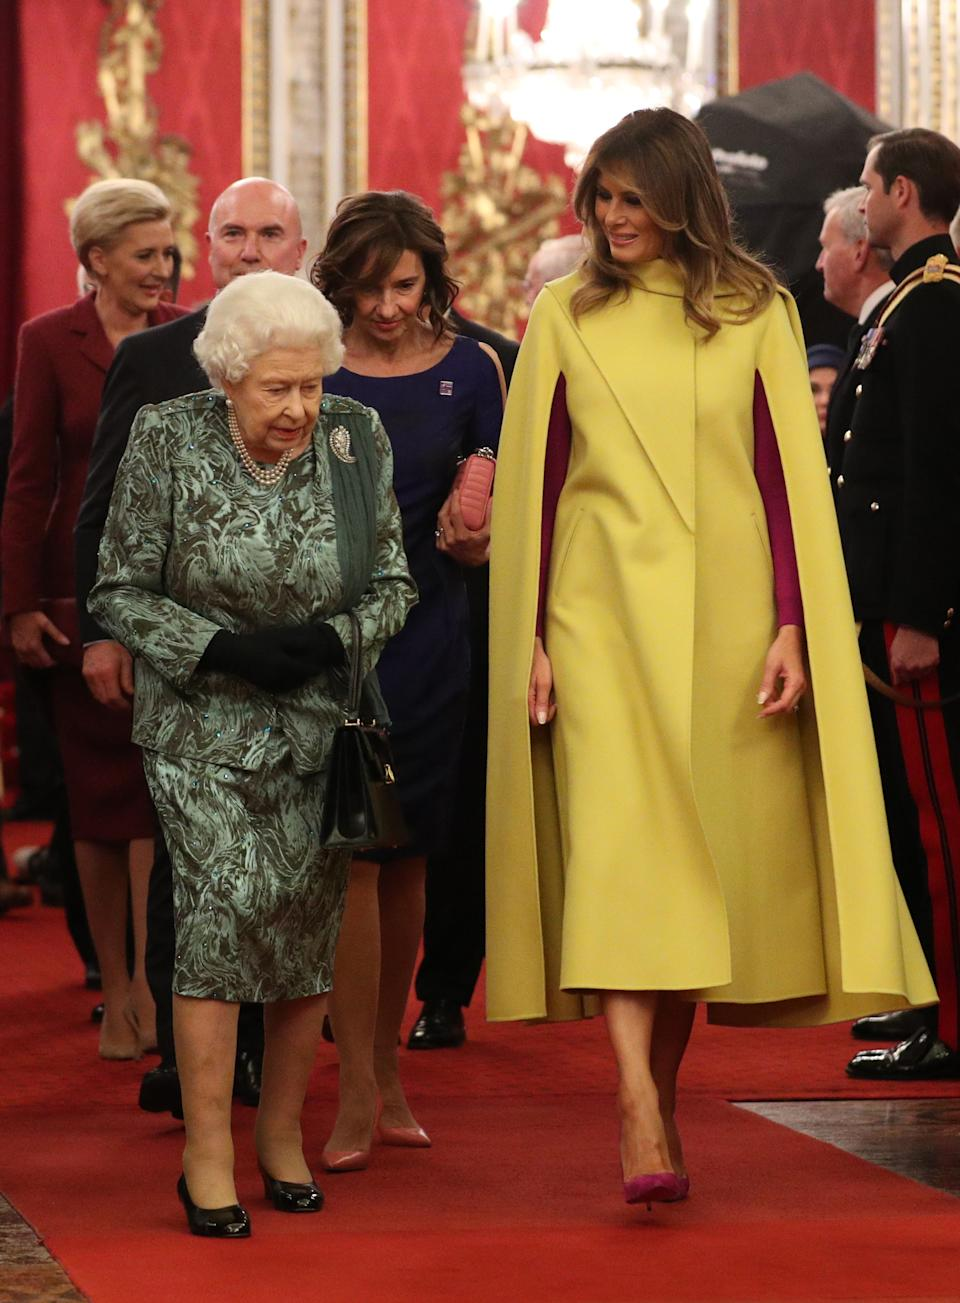 Queen Elizabeth II with Melania Trump during the reception in Buckingham Palace, London, as Nato leaders gather to mark 70 years of the alliance. [Photo: Getty]